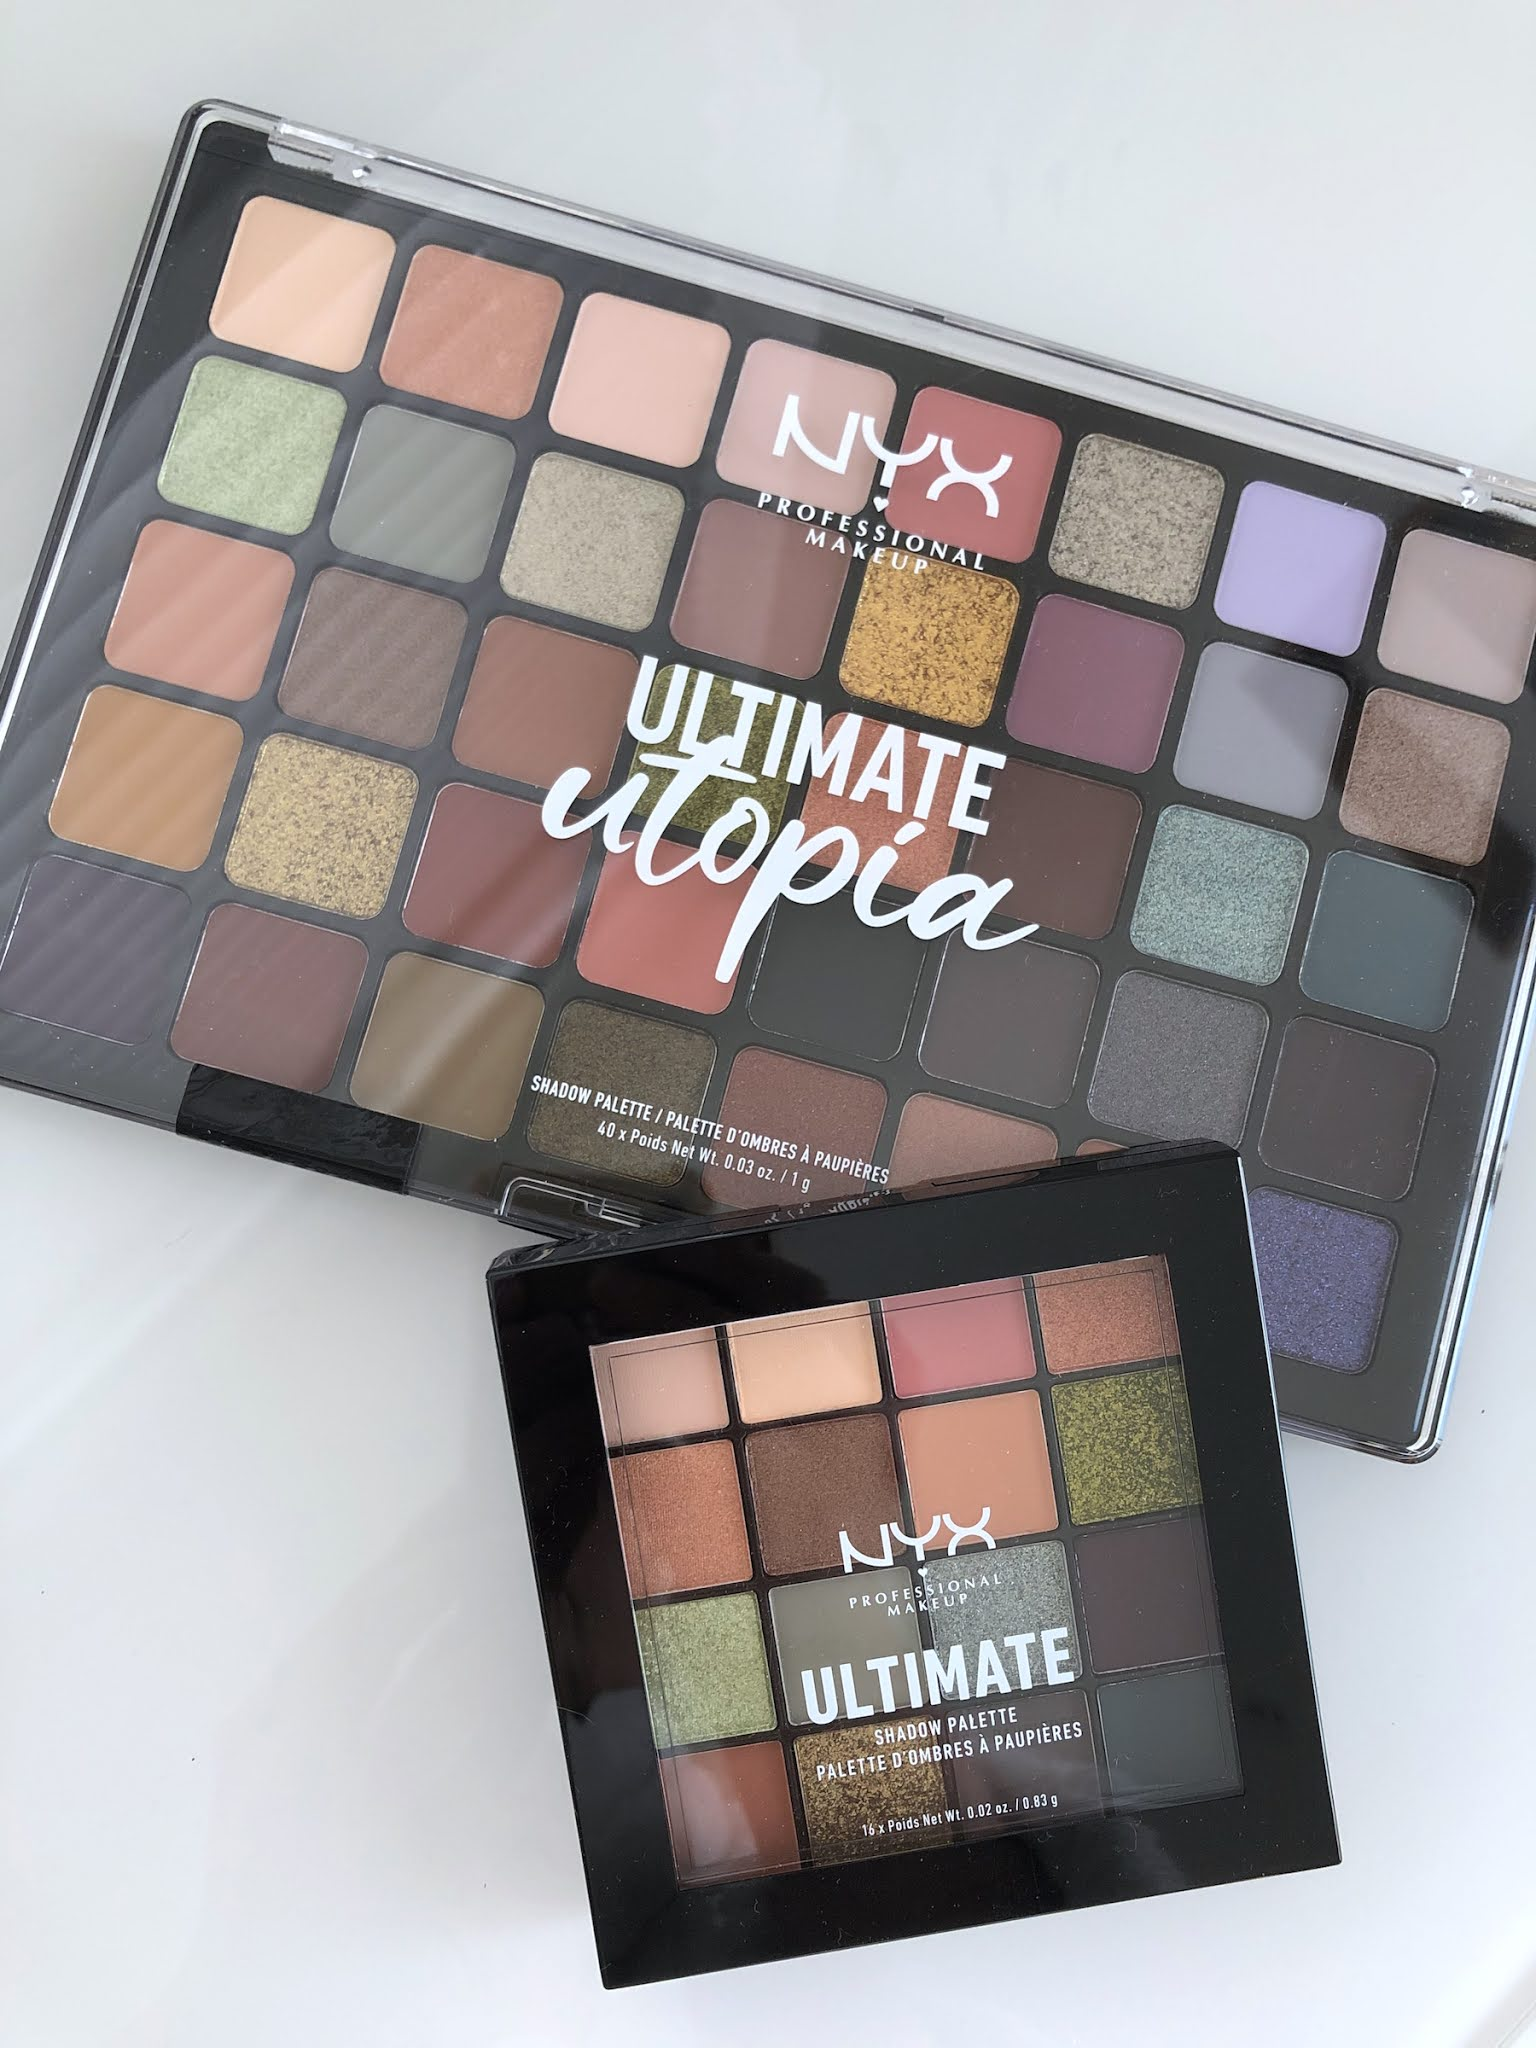 NYX Ultimate Shadow Palette: A quick review